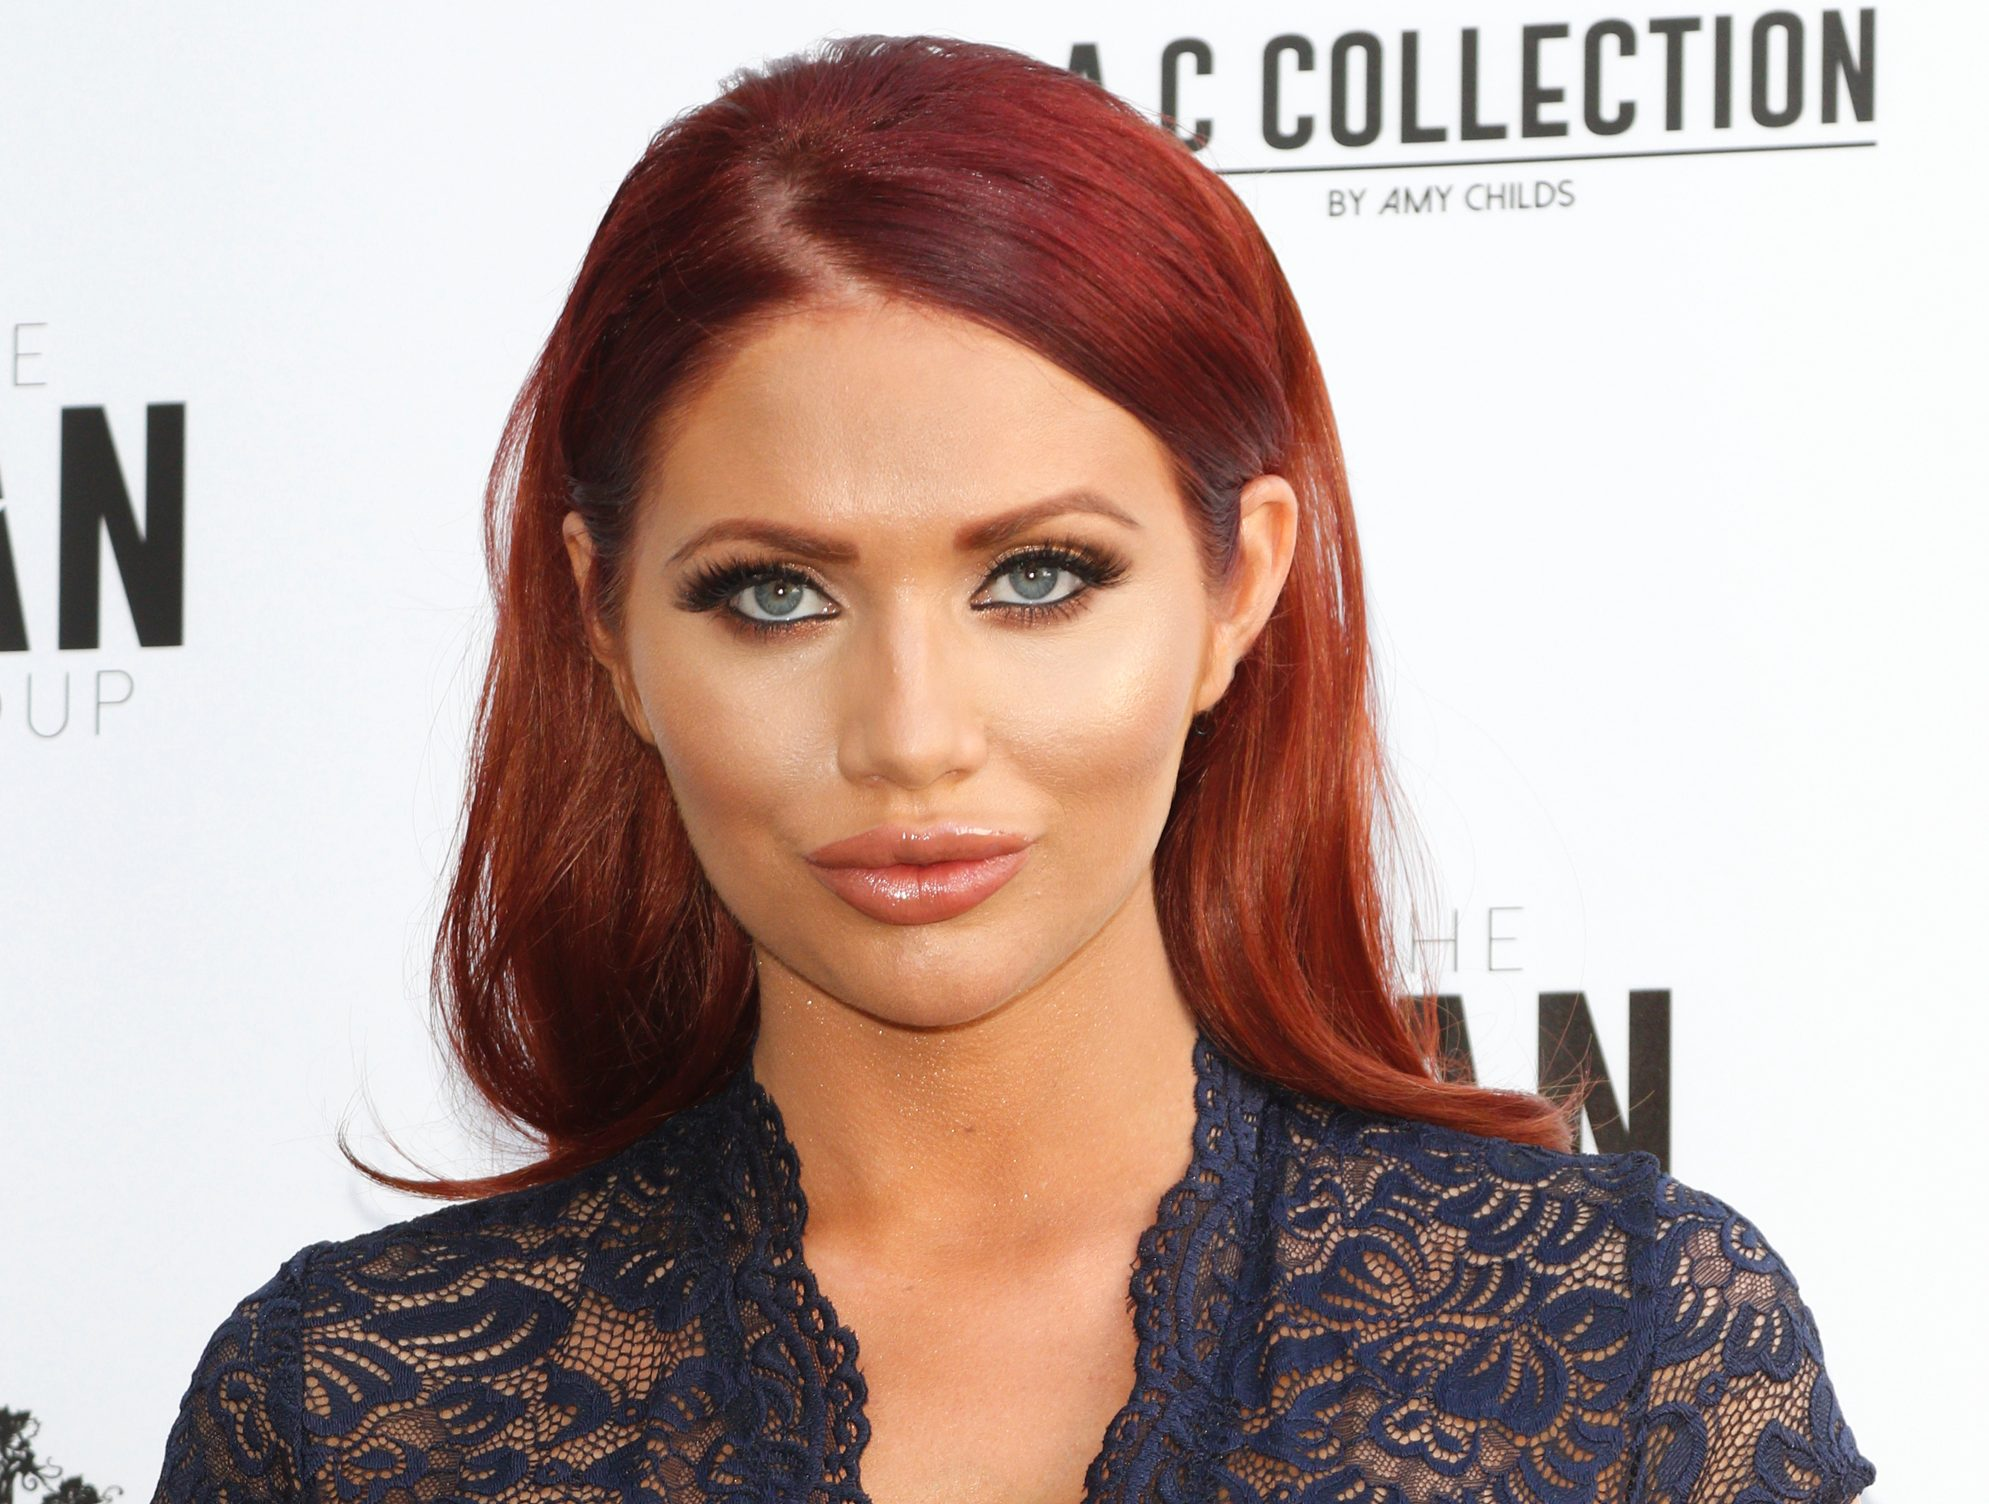 Fotos Amy Childs naked (64 photos), Pussy, Hot, Instagram, braless 2019